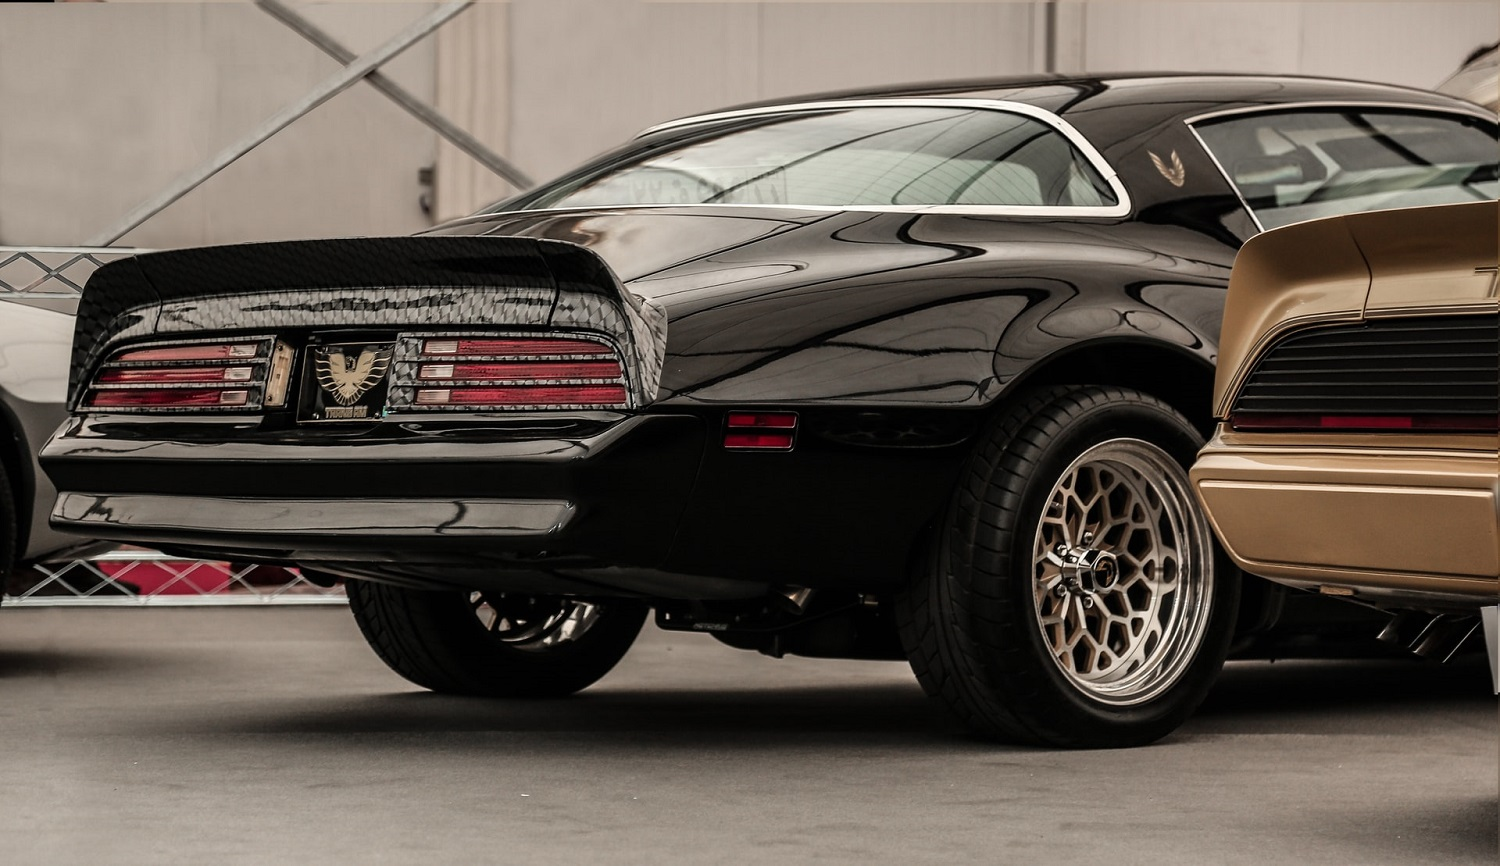 Discerning the Difference Between the Pontiac Firebird and the Trans Am